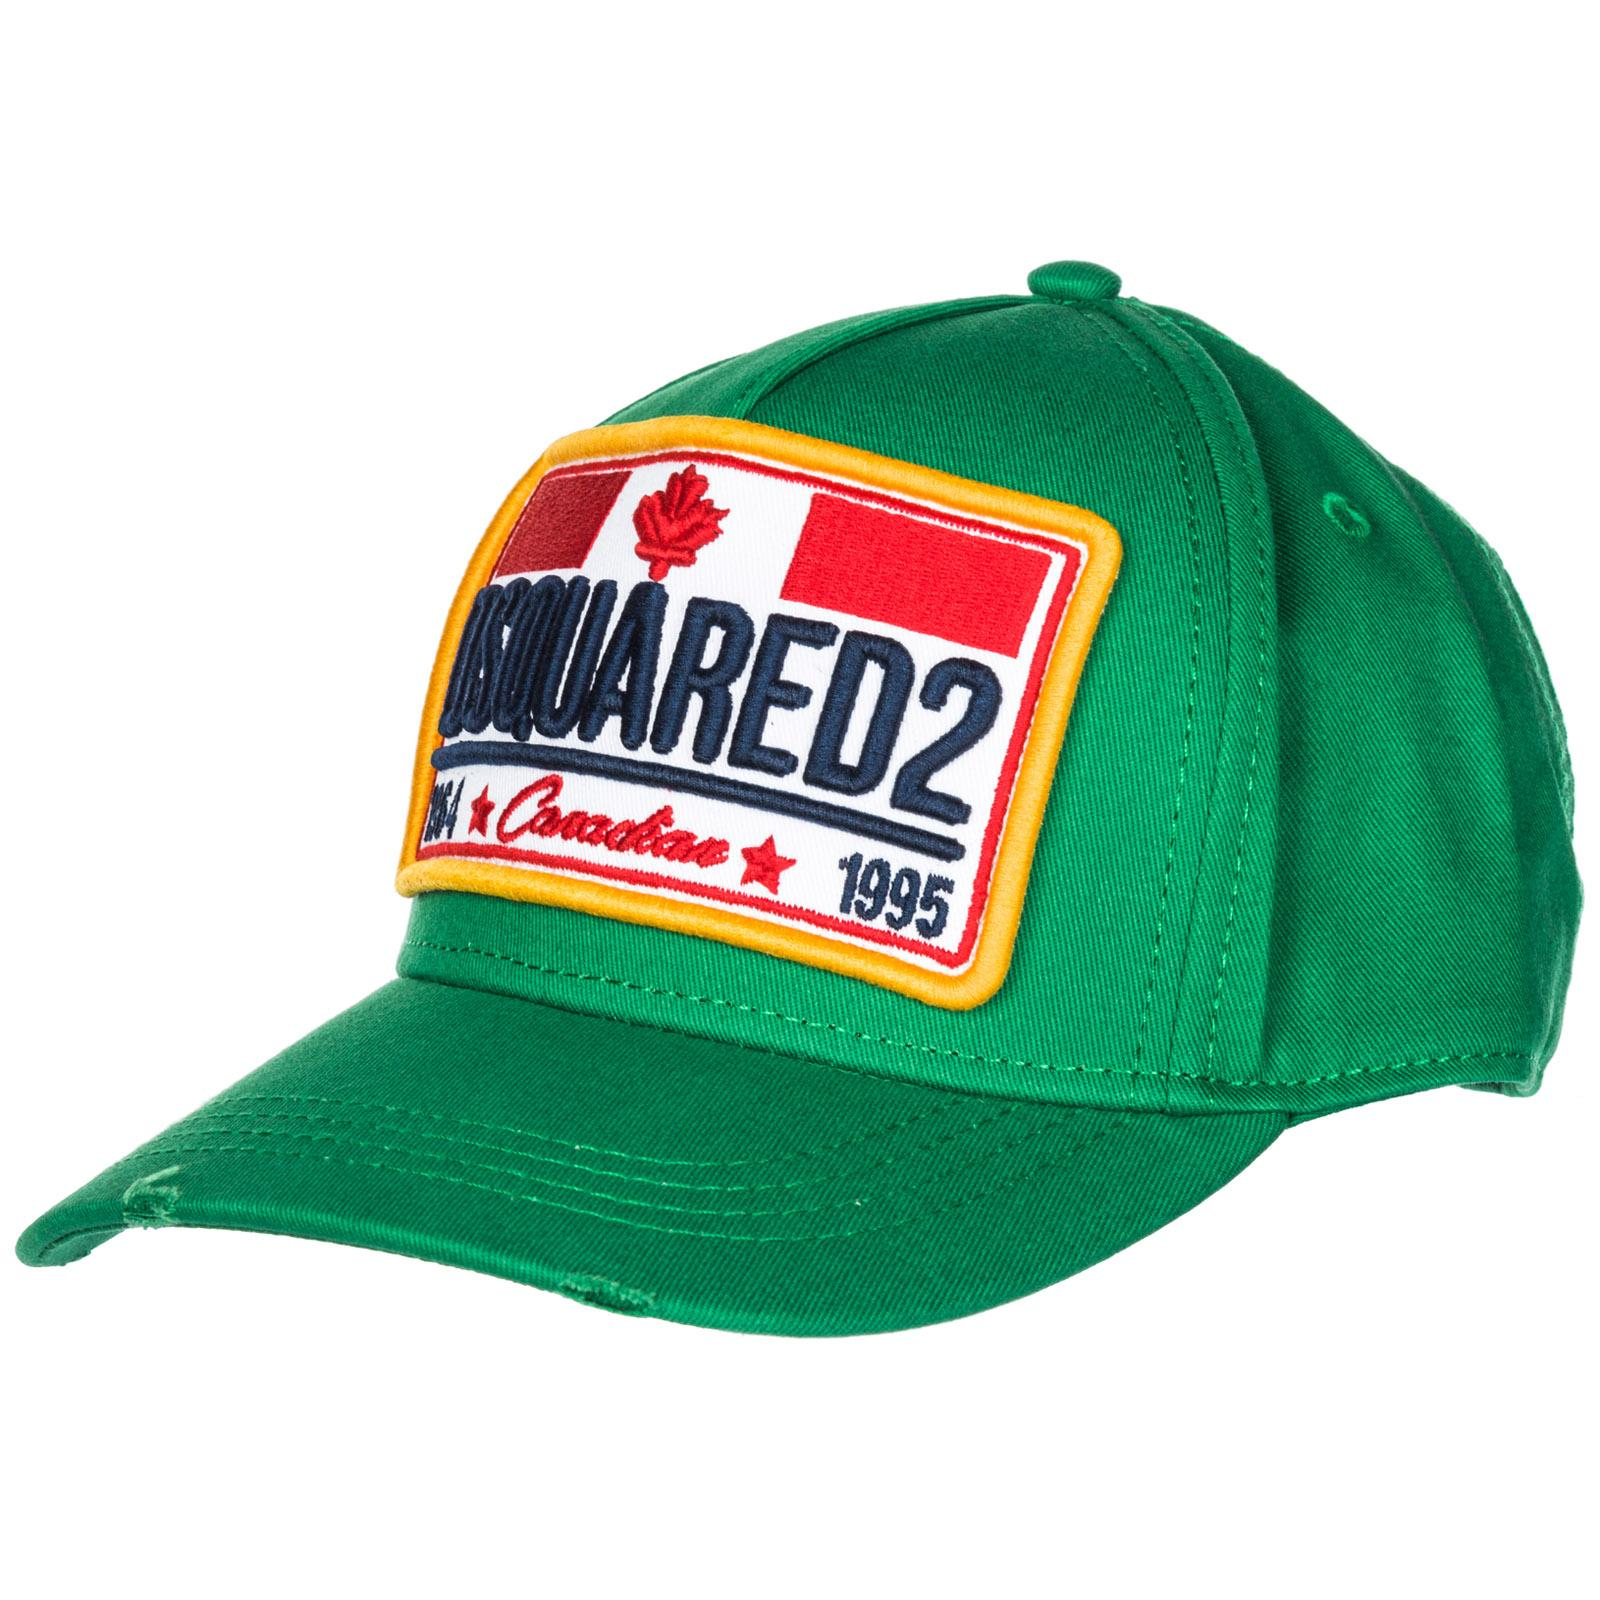 0d950a4bf4c4ac Dsquared2 Adjustable Men's Cotton Hat Baseball Cap Canadian Flag In Green